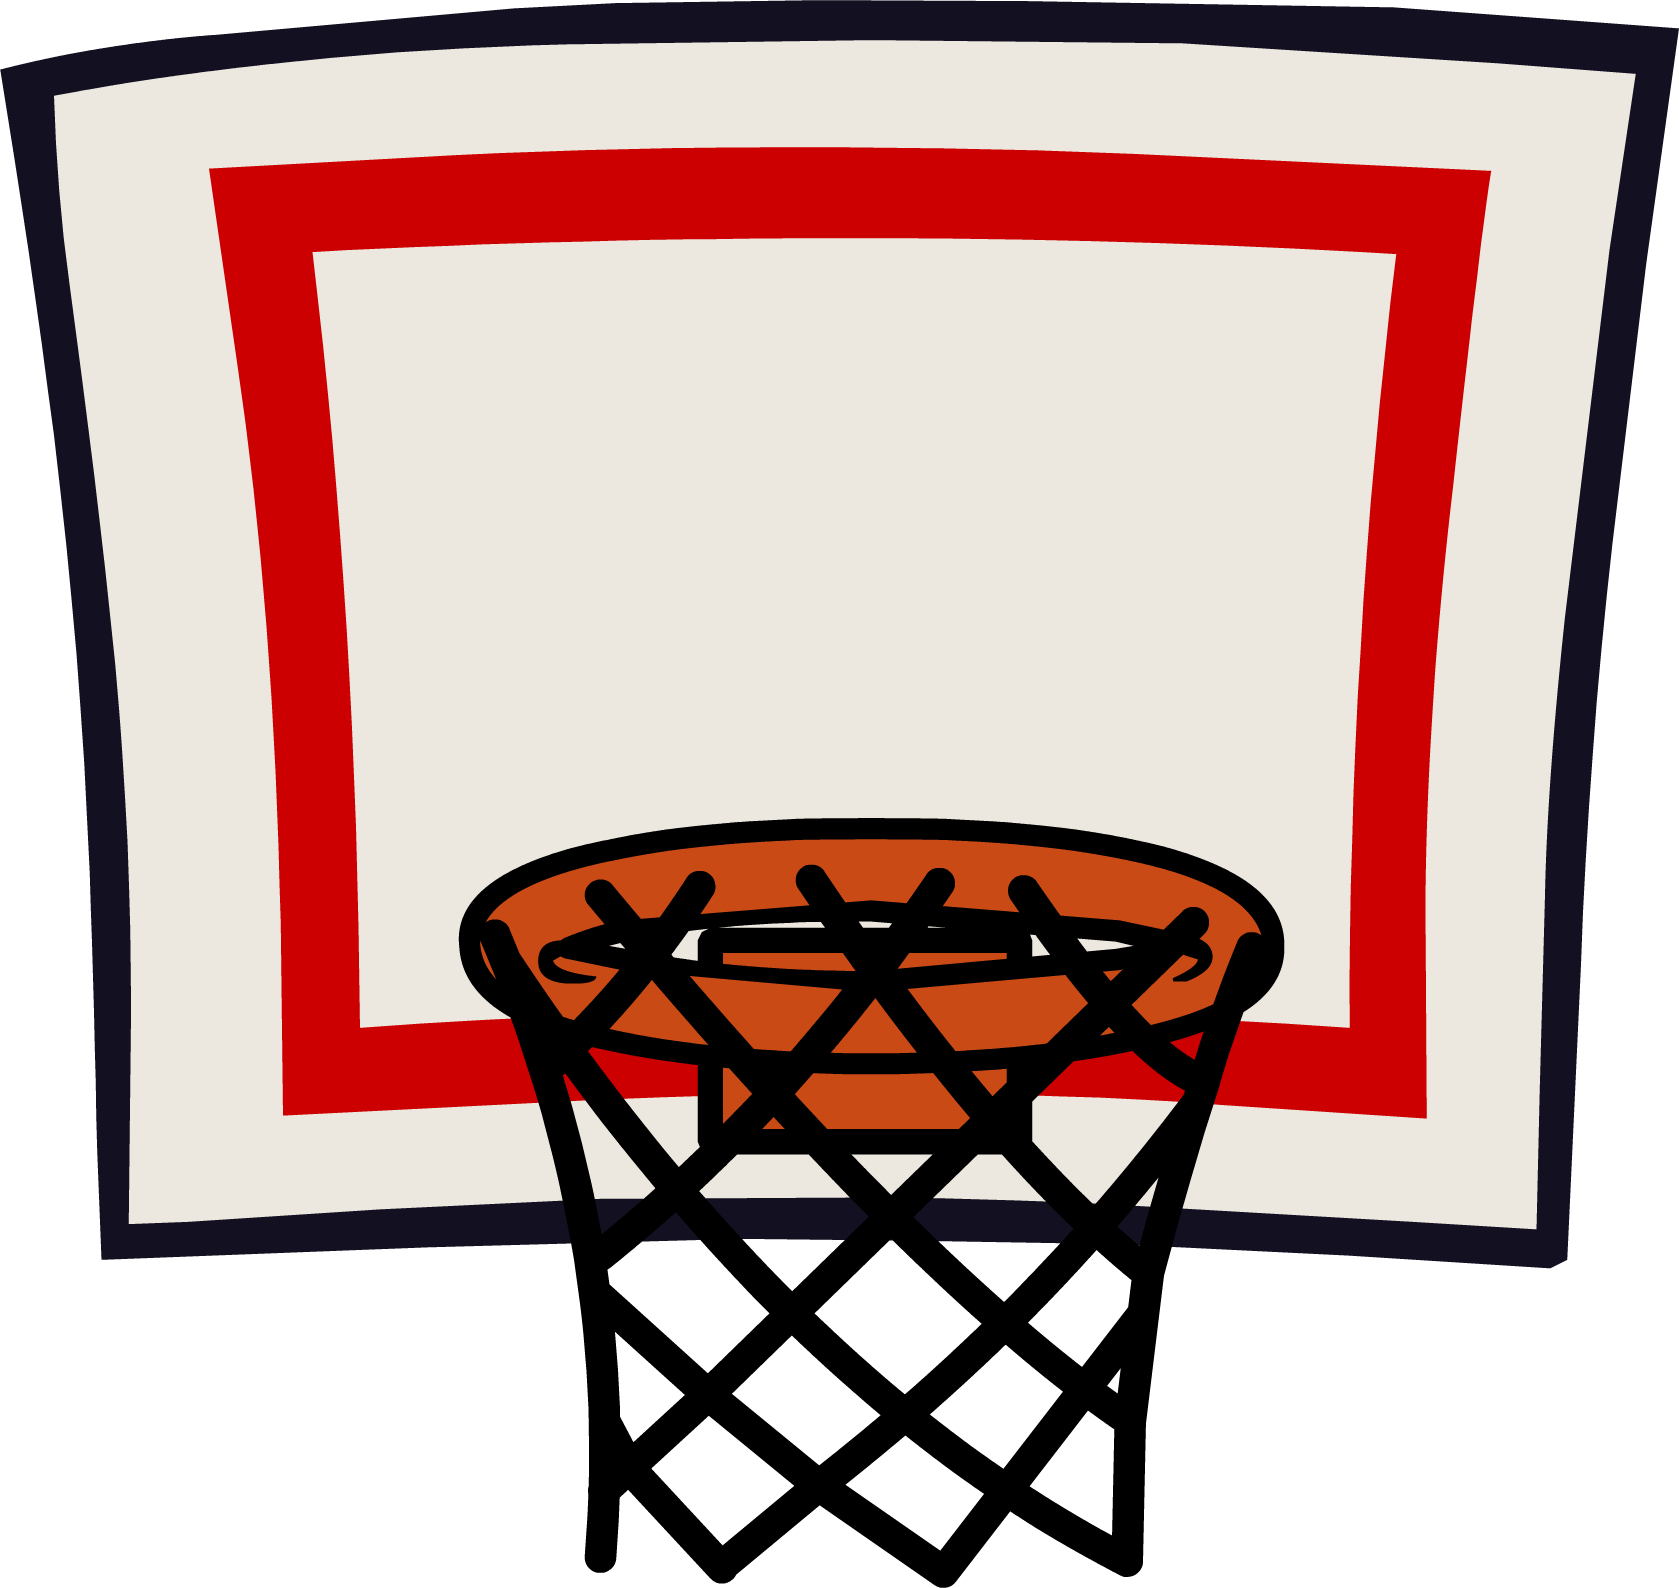 Basketball and hoop clipart jpg black and white 28+ Collection of Basketball Board Ring Clipart Png   High quality ... jpg black and white